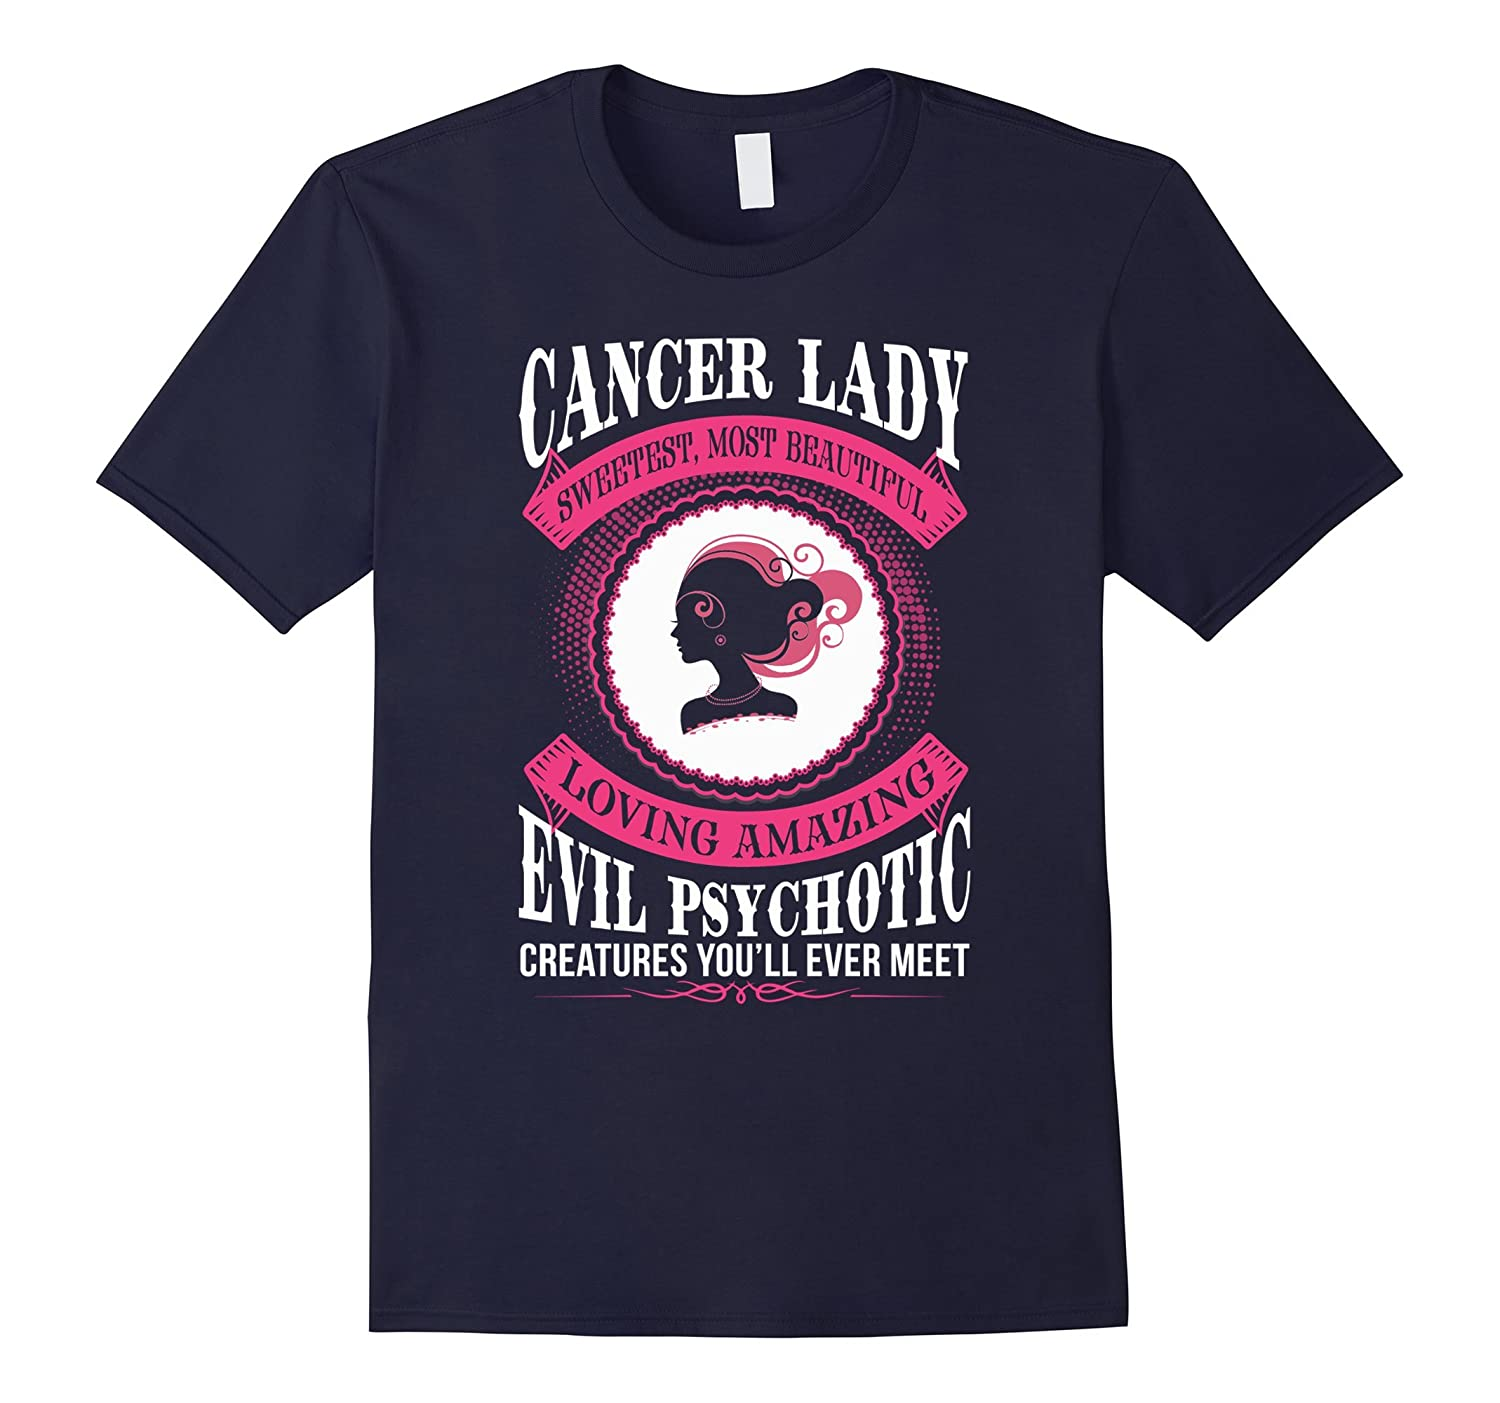 Cancer lady evil psychotic creatures funny t shirt-TD